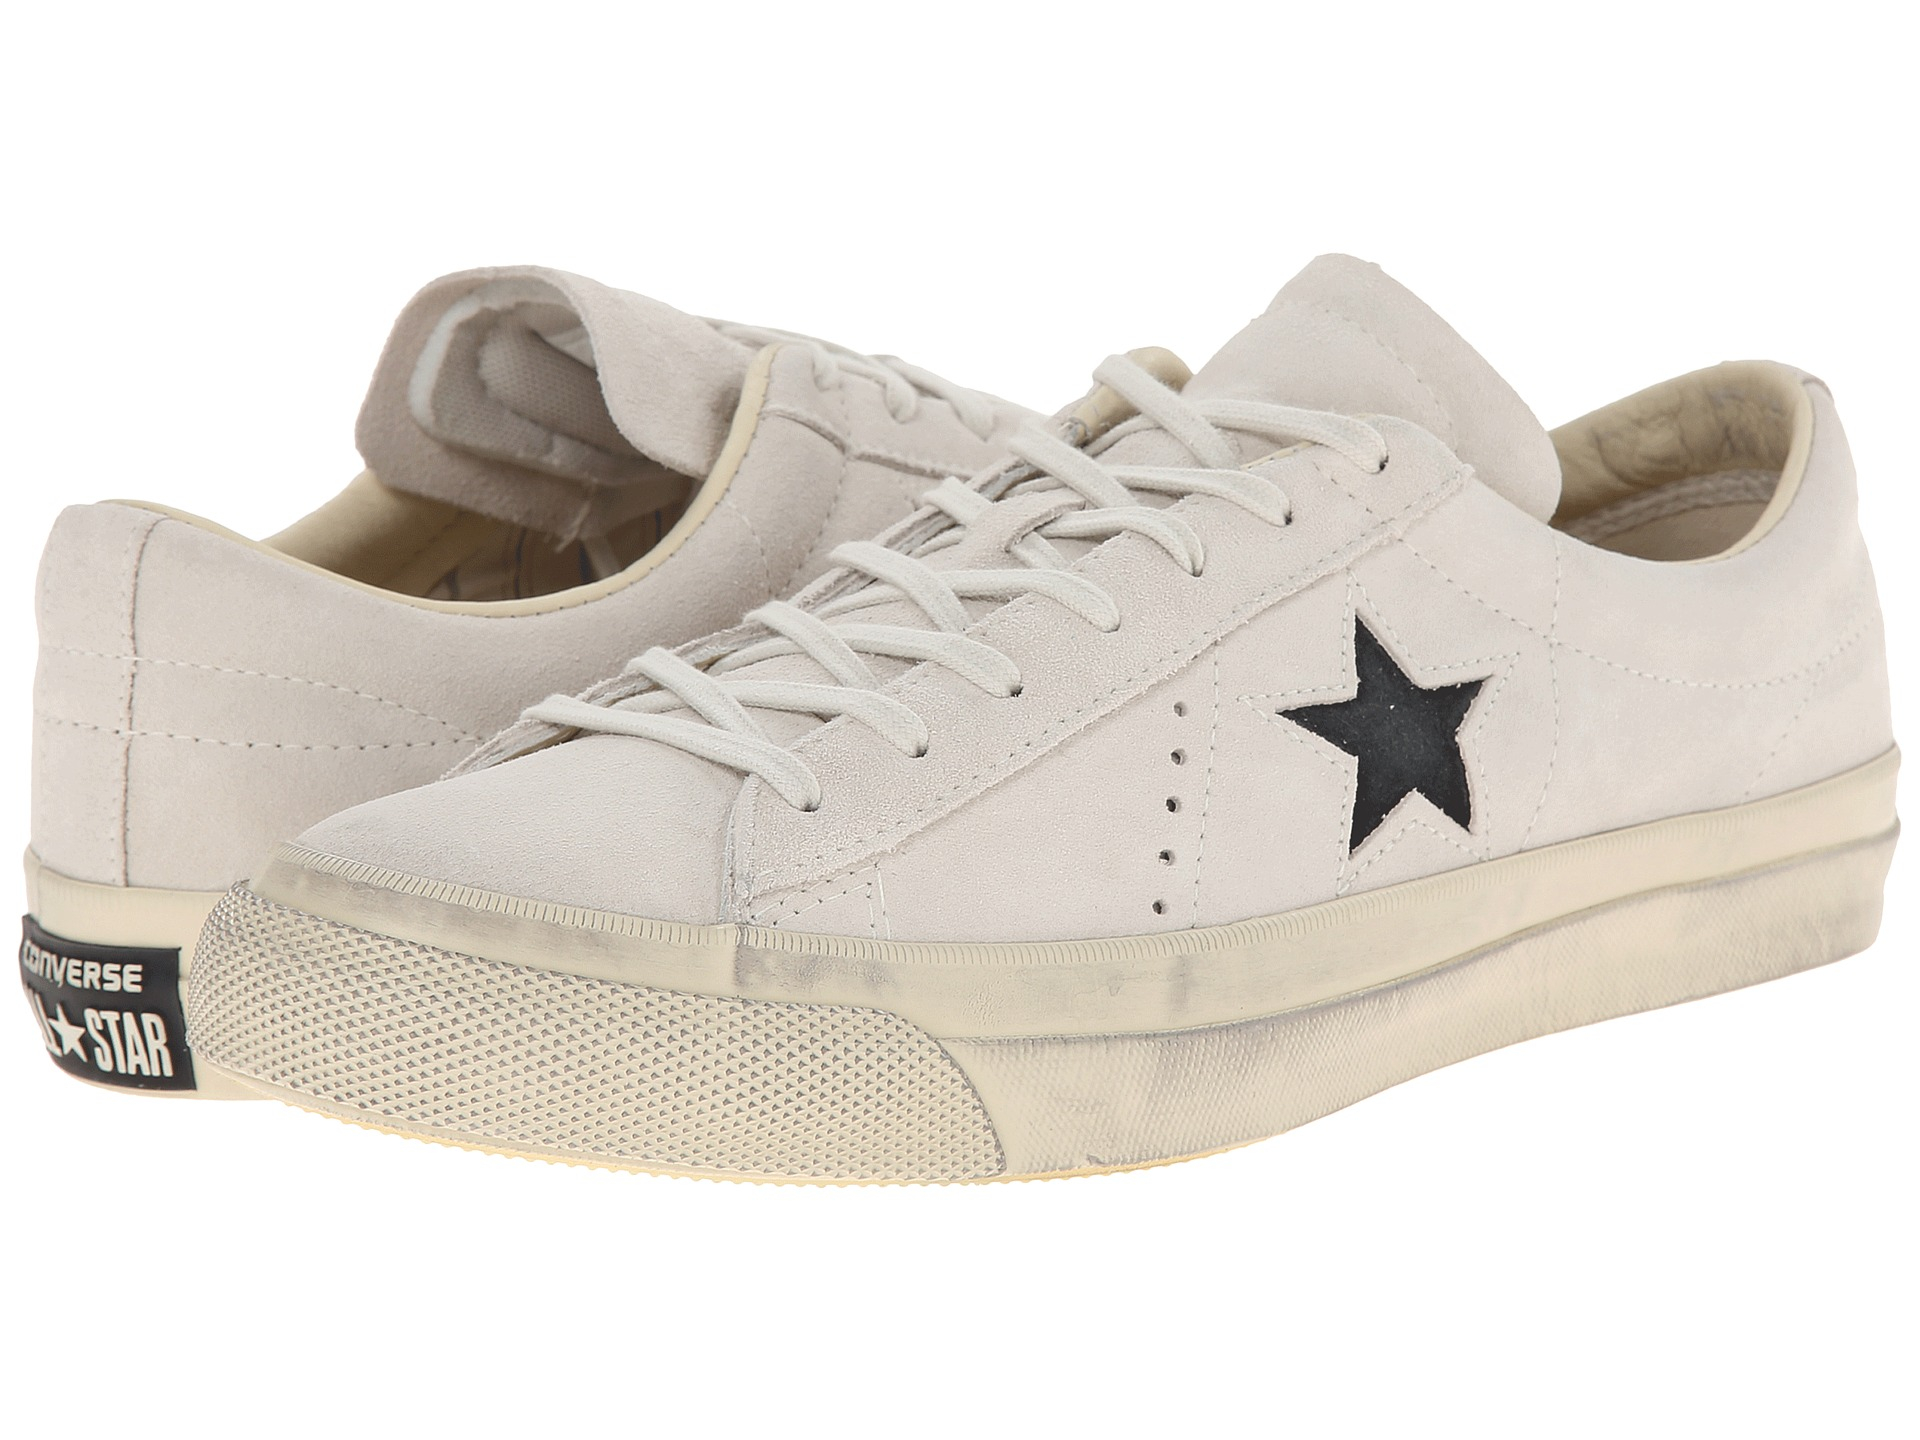 2755596df9db ... Converse One Star Burnished Suede in White Lyst Converse by John  Varvatos Oxford CTAS ...